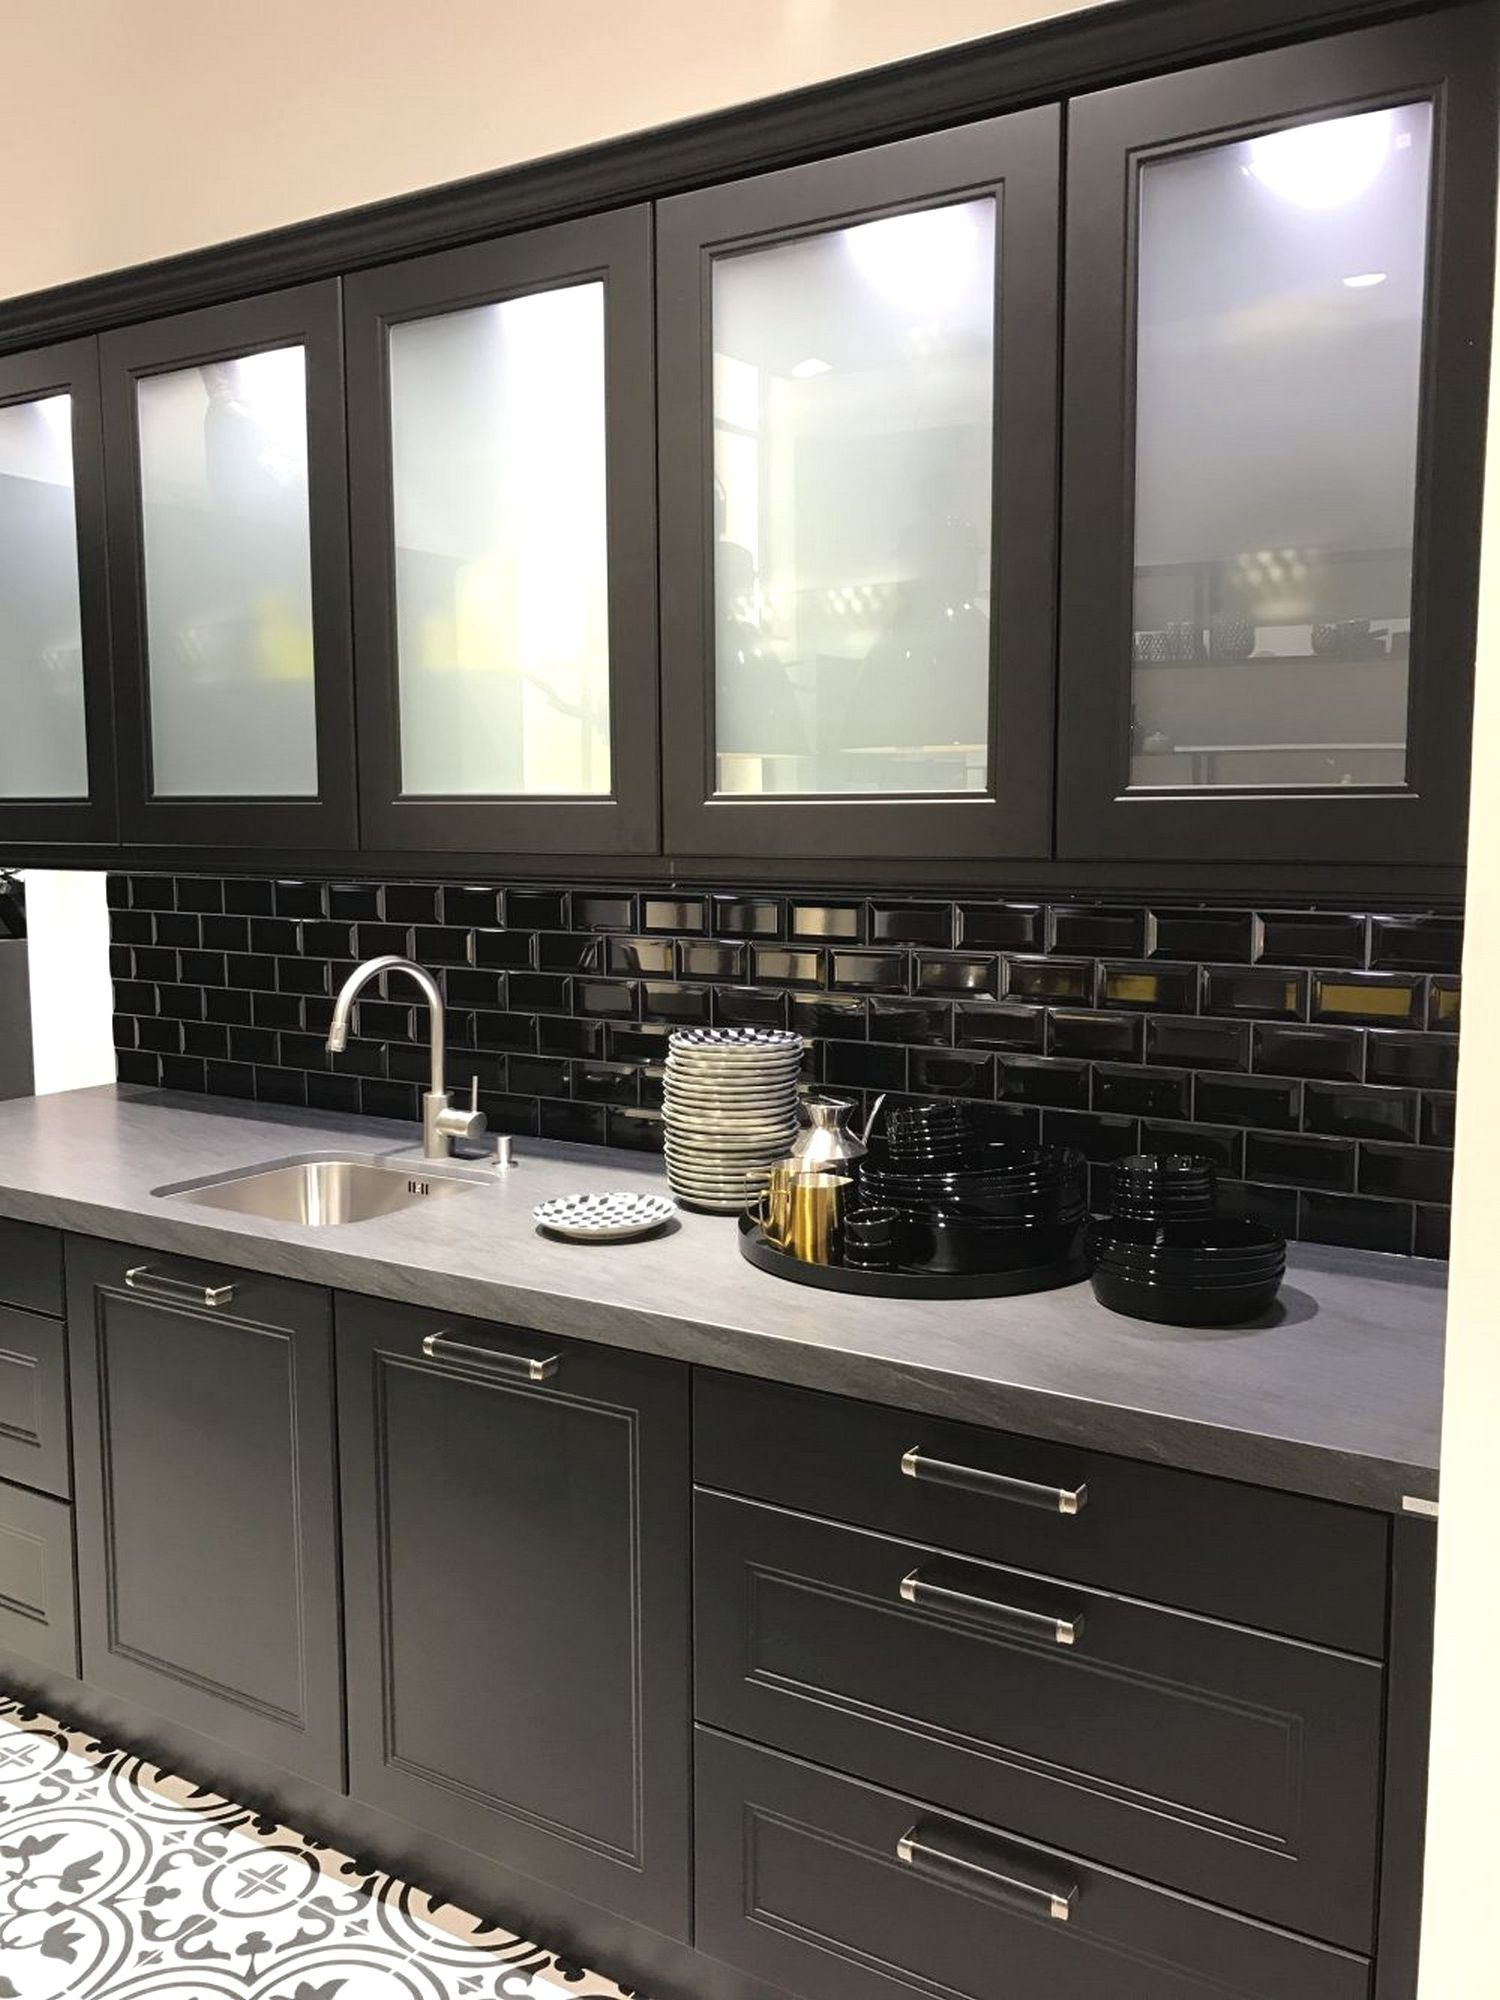 ideas on installing the best frosted glass cabinets in your kitchen in 2020 glass kitchen on kitchen cabinets with glass doors on top id=86926